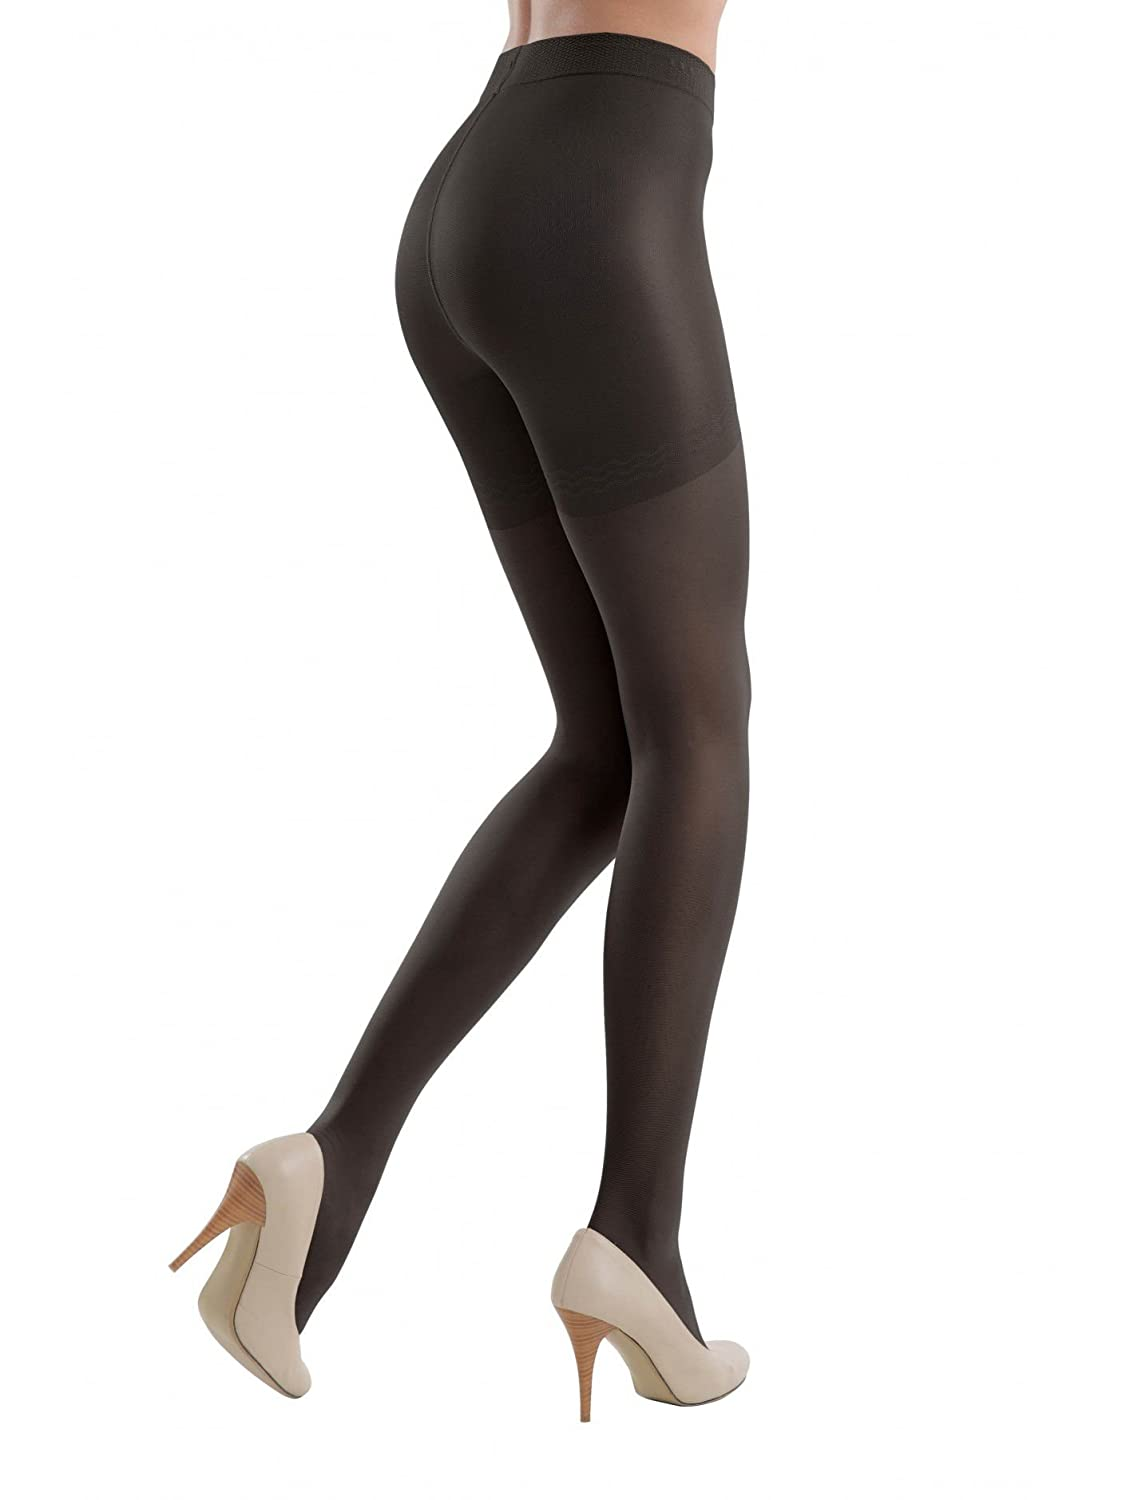 30112d6e5aaca Conte Women's Shaping Nude Pantyhose Tights - Control Compression 40 Denier  at Amazon Women's Clothing store: